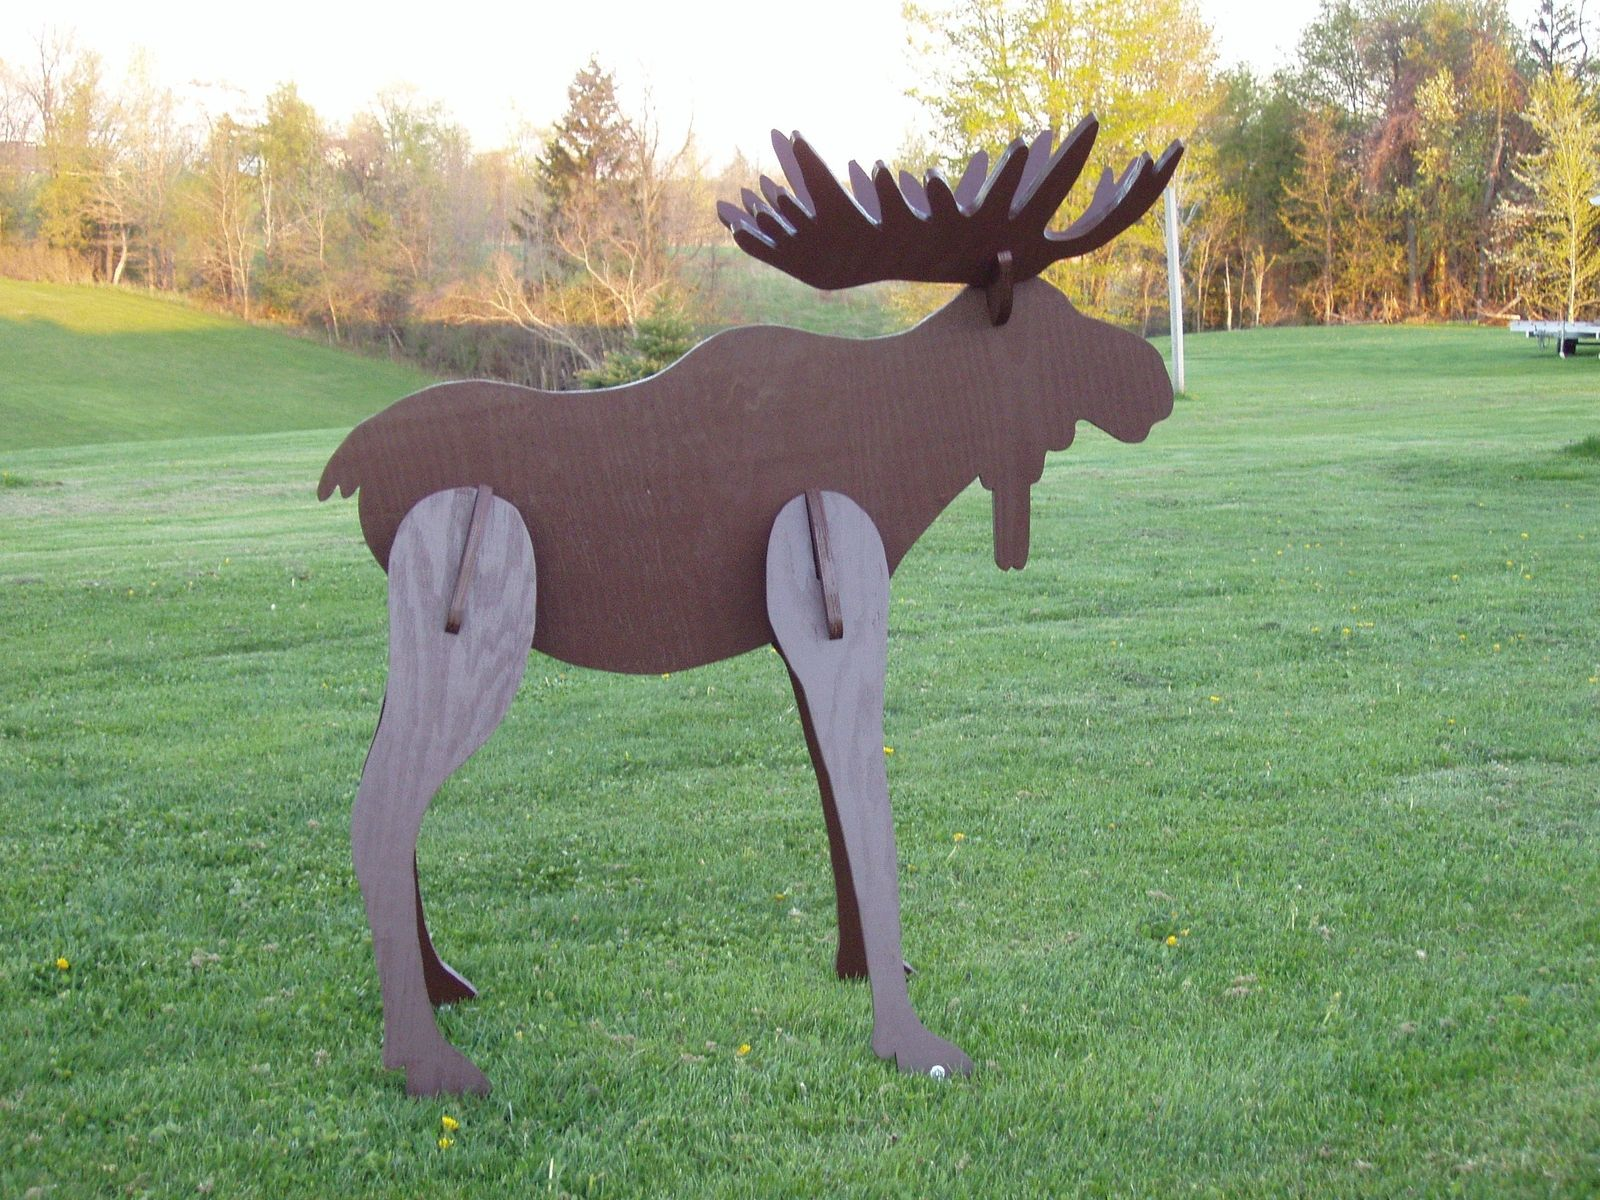 Hand Crafted Lawn Moose Decoration by Windy Woods Custom Design  CustomMadecom